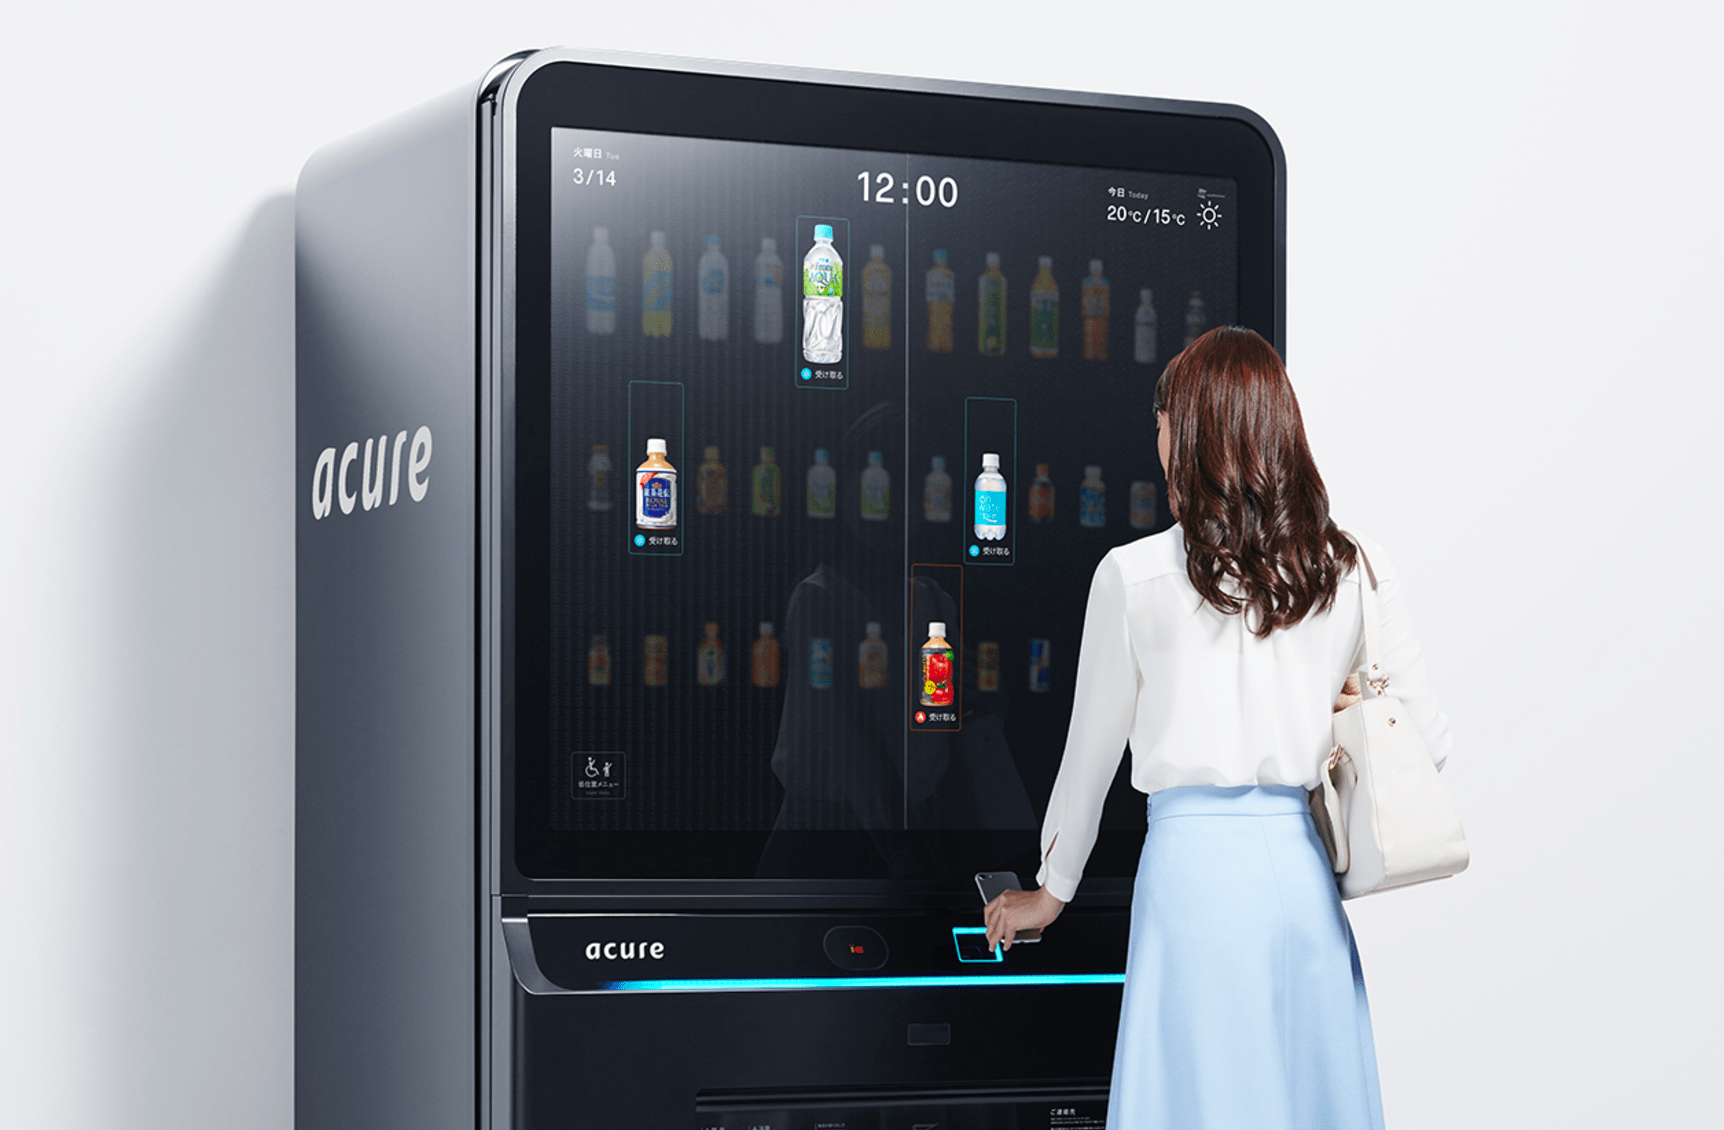 Two New Vending Machines High Tech Cashless Versus Old